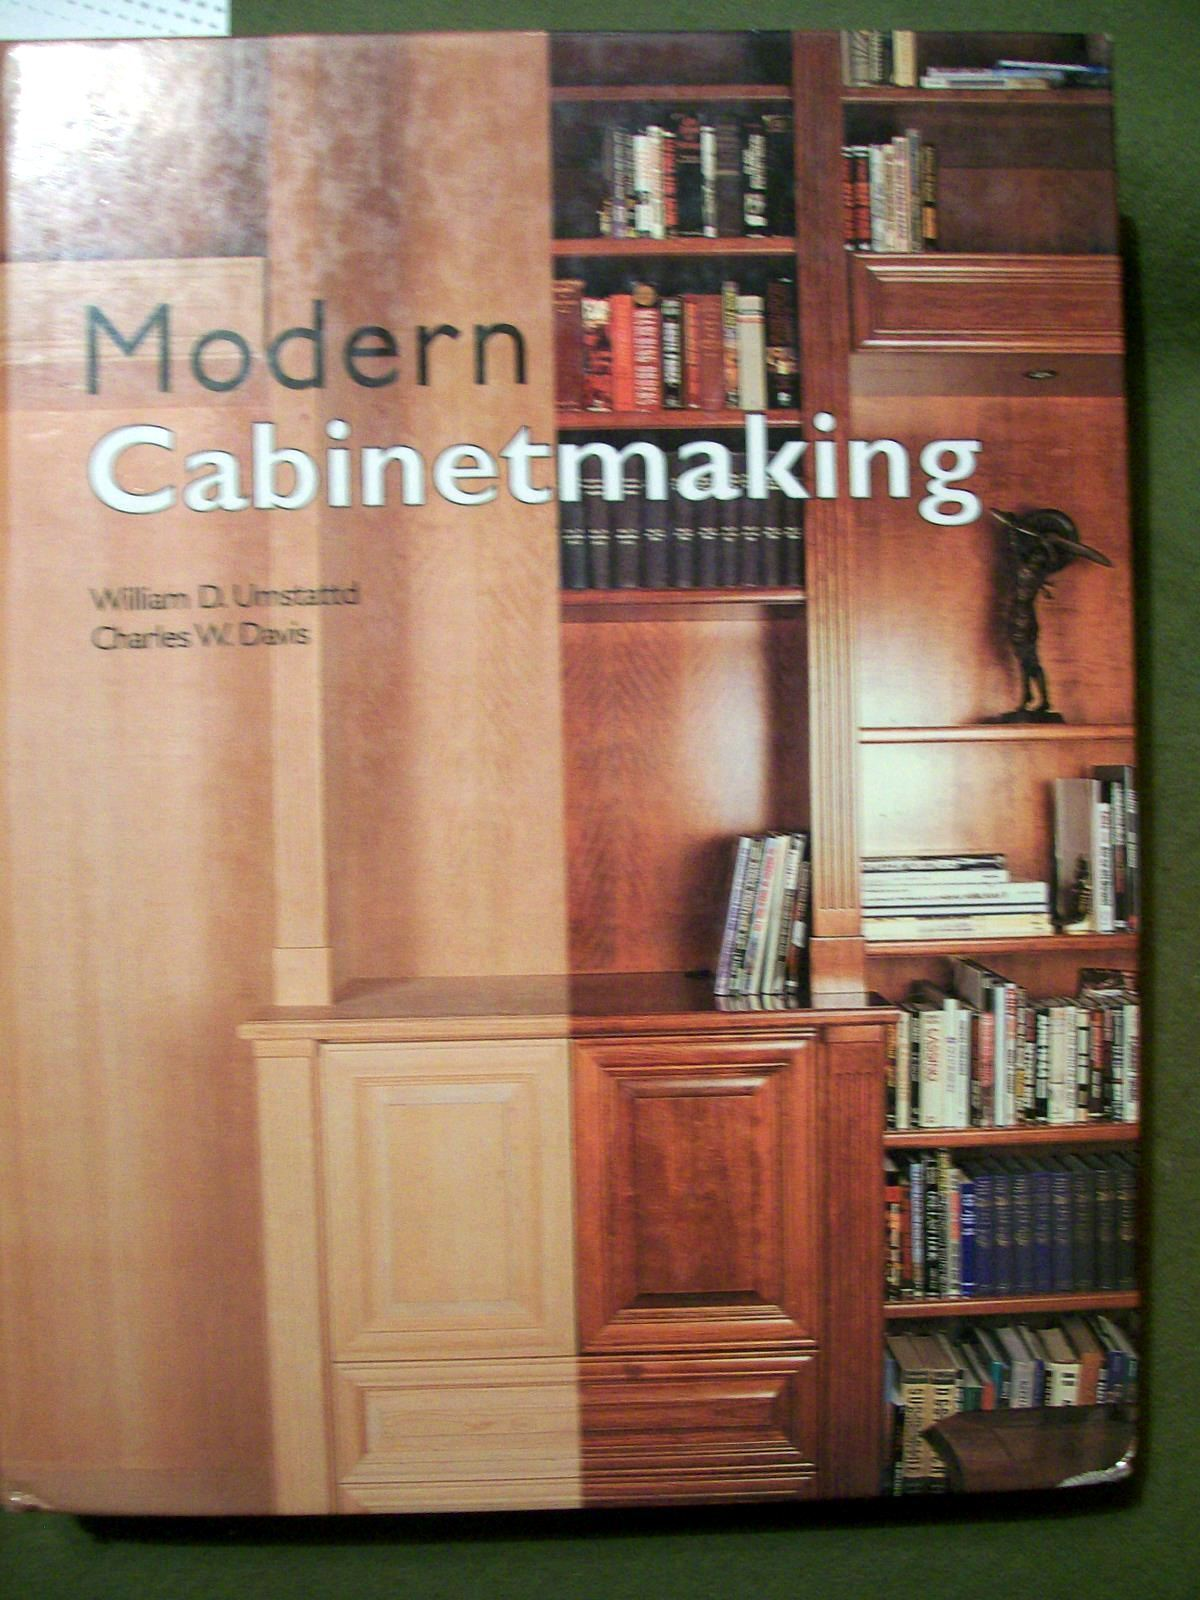 modern cabinetmakingwilliam d. umstattd and charles w. davis (2000,  hardcover)